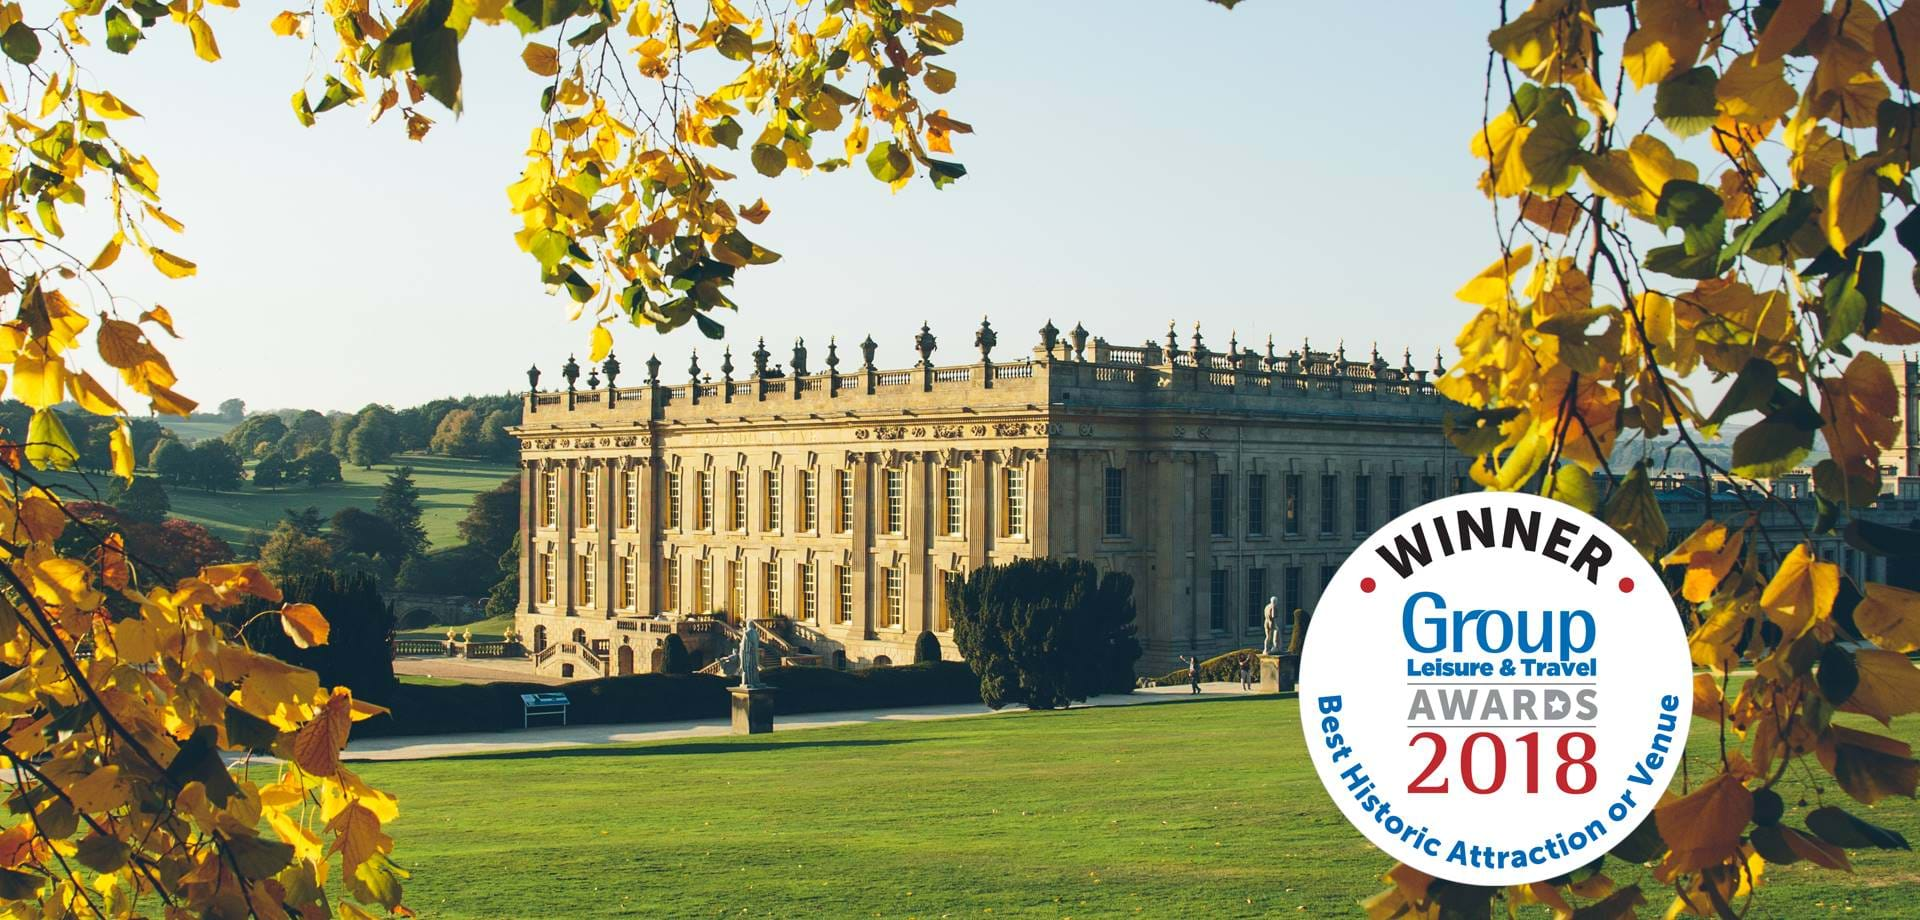 Chatsworth named 'Best Historic Attraction' at 2018 Group Leisure & Travel Awards